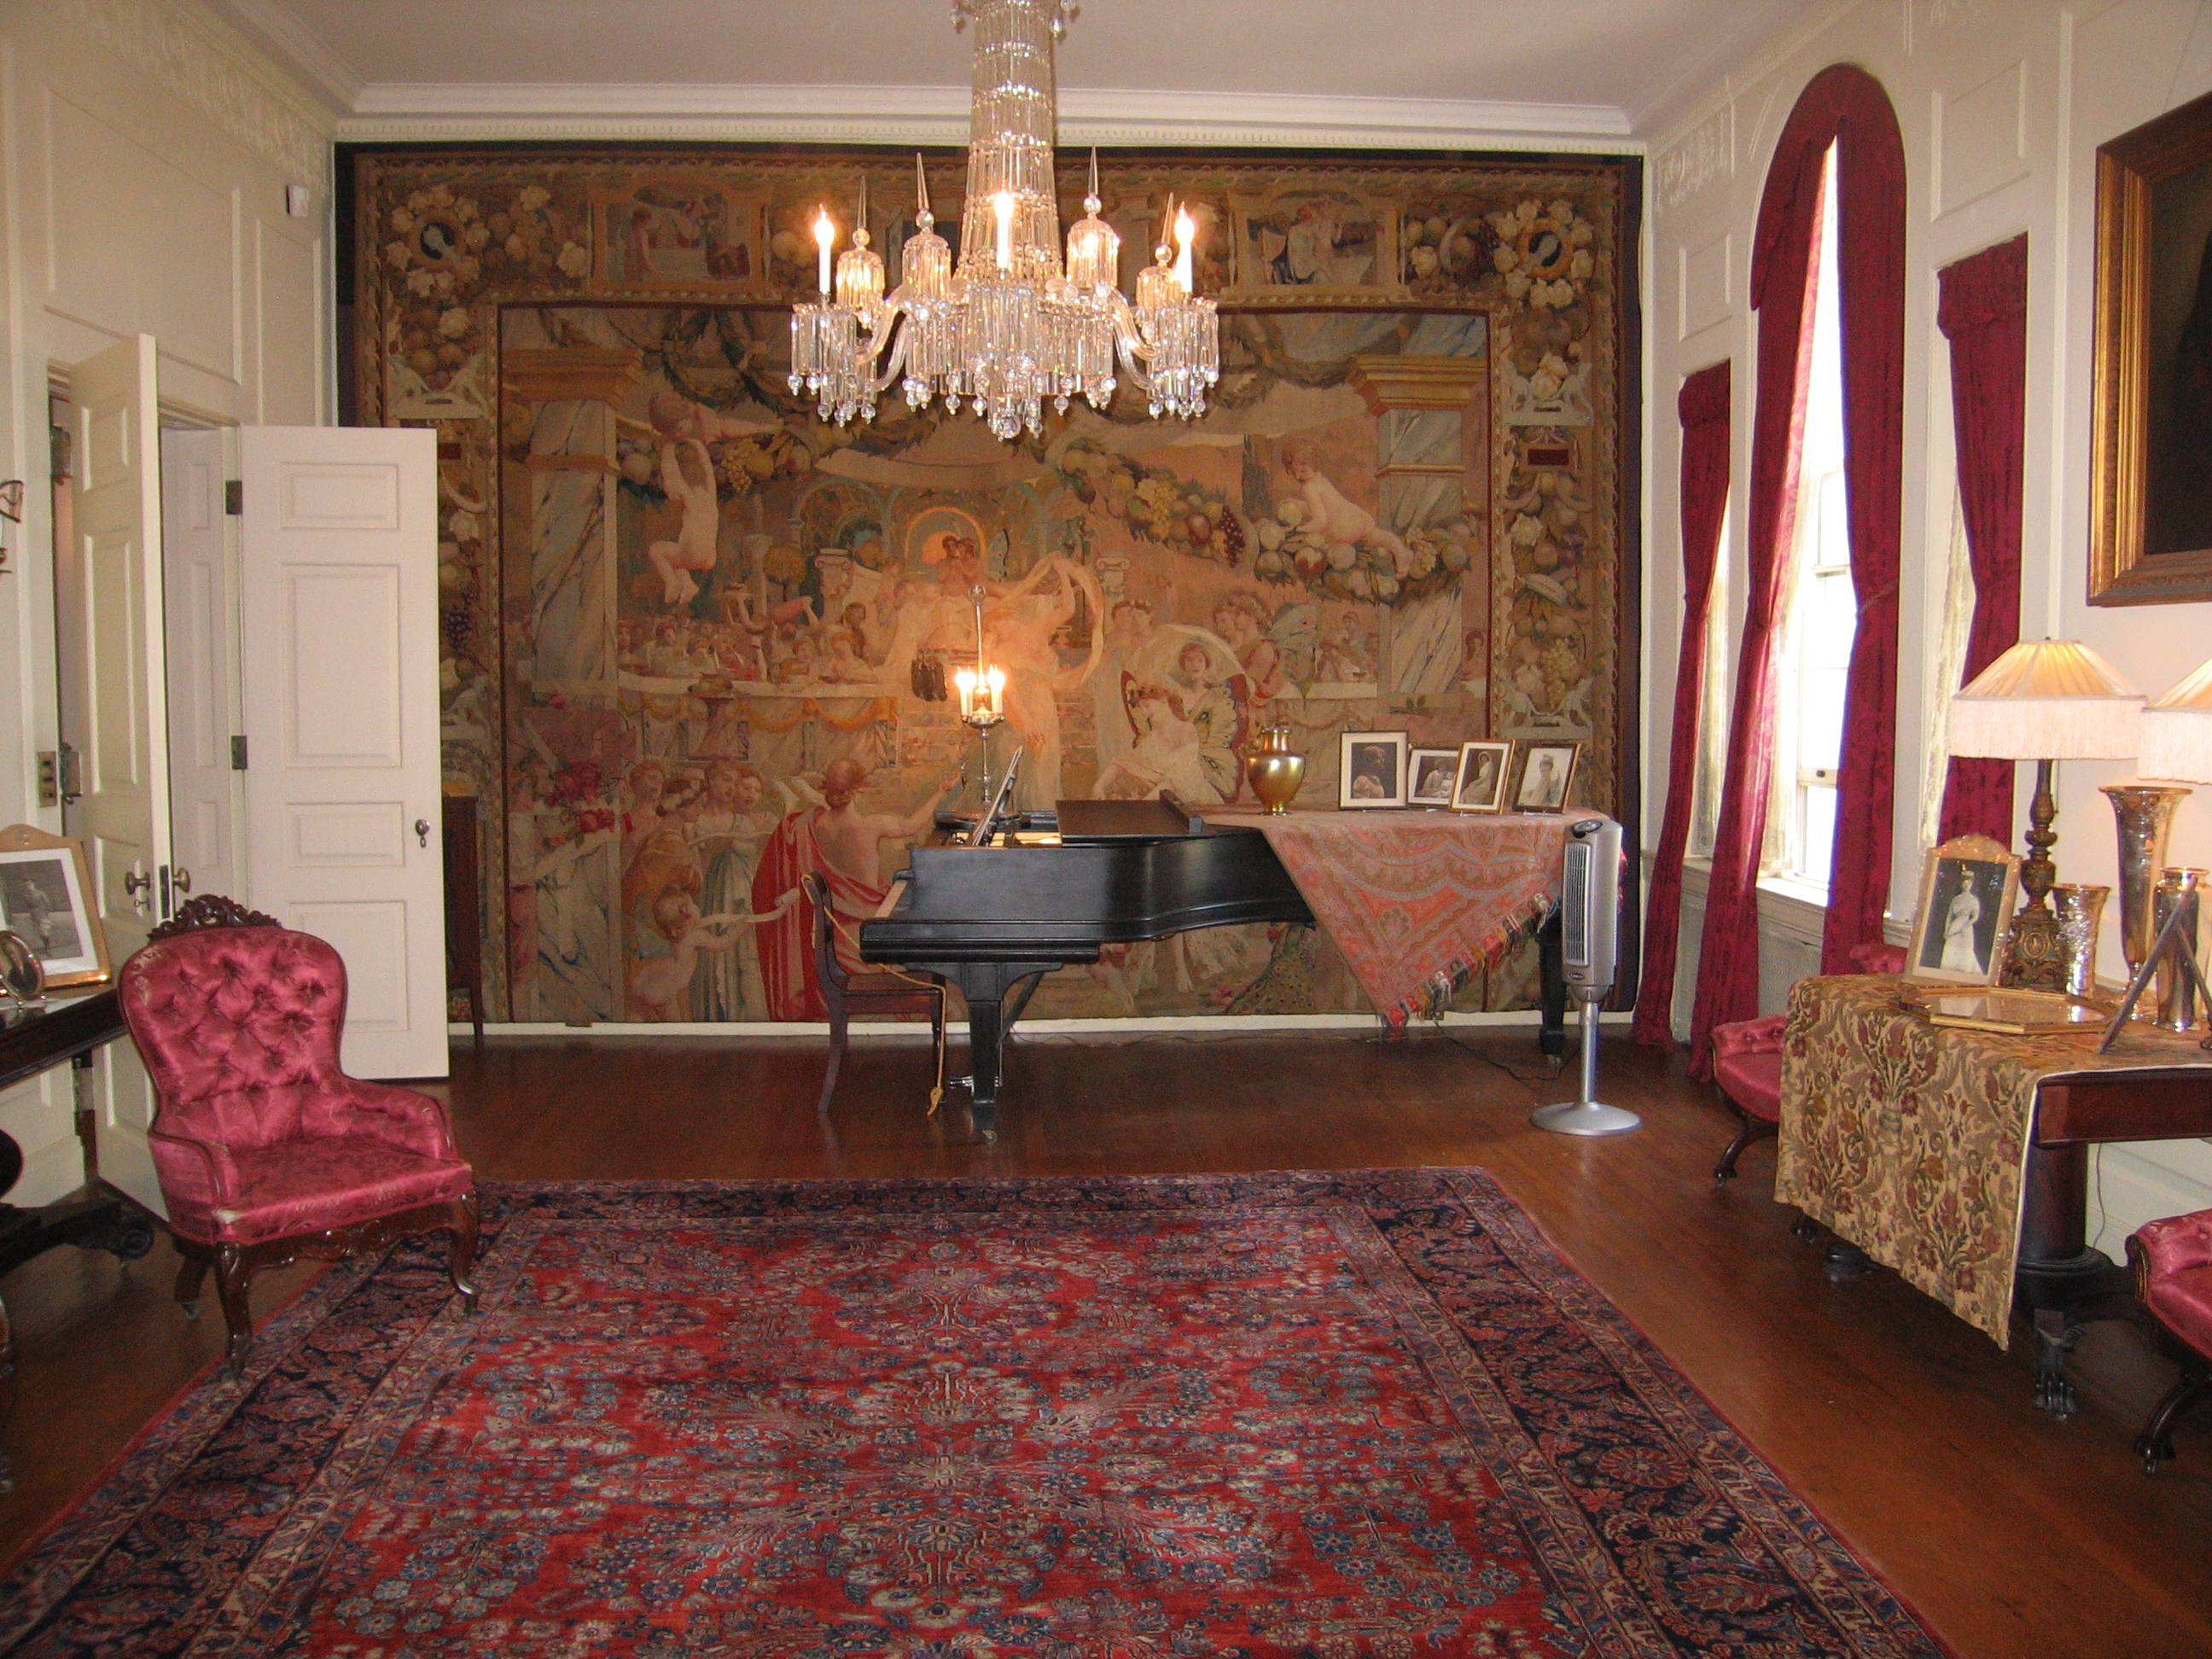 Visitors can see the drawing room in the Woodrow Wilson House in Washington, D.C., where he lived after leaving office. Wilson's wife, Edith, wanted to buy the home partly because there was room on the wall to hang a 17th-century tapestry that had been a gift to the Wilsons from France.